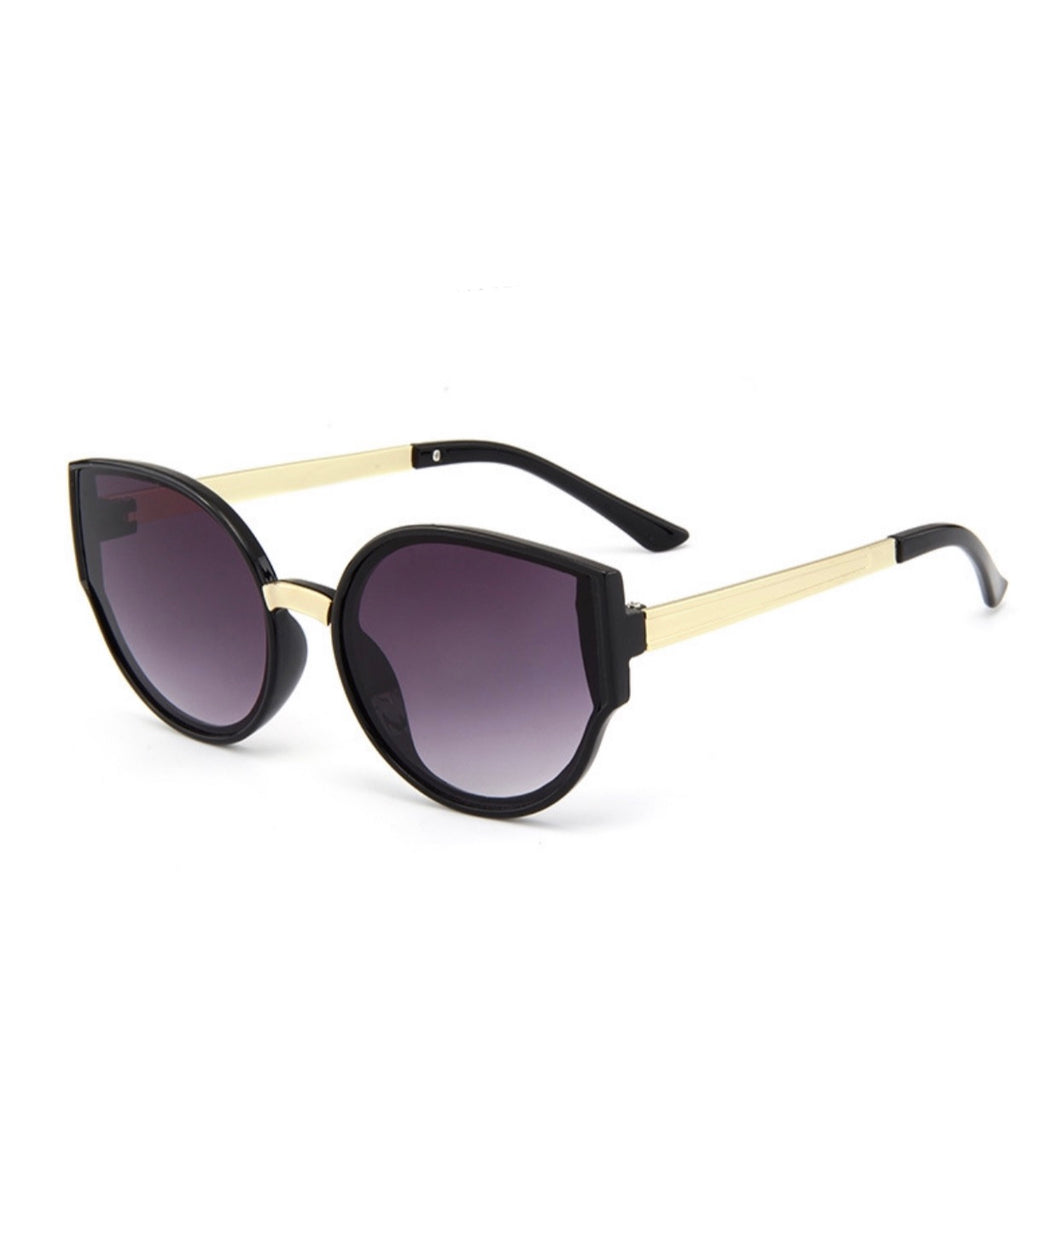 S029 - Semi Cat Eye Sunglass